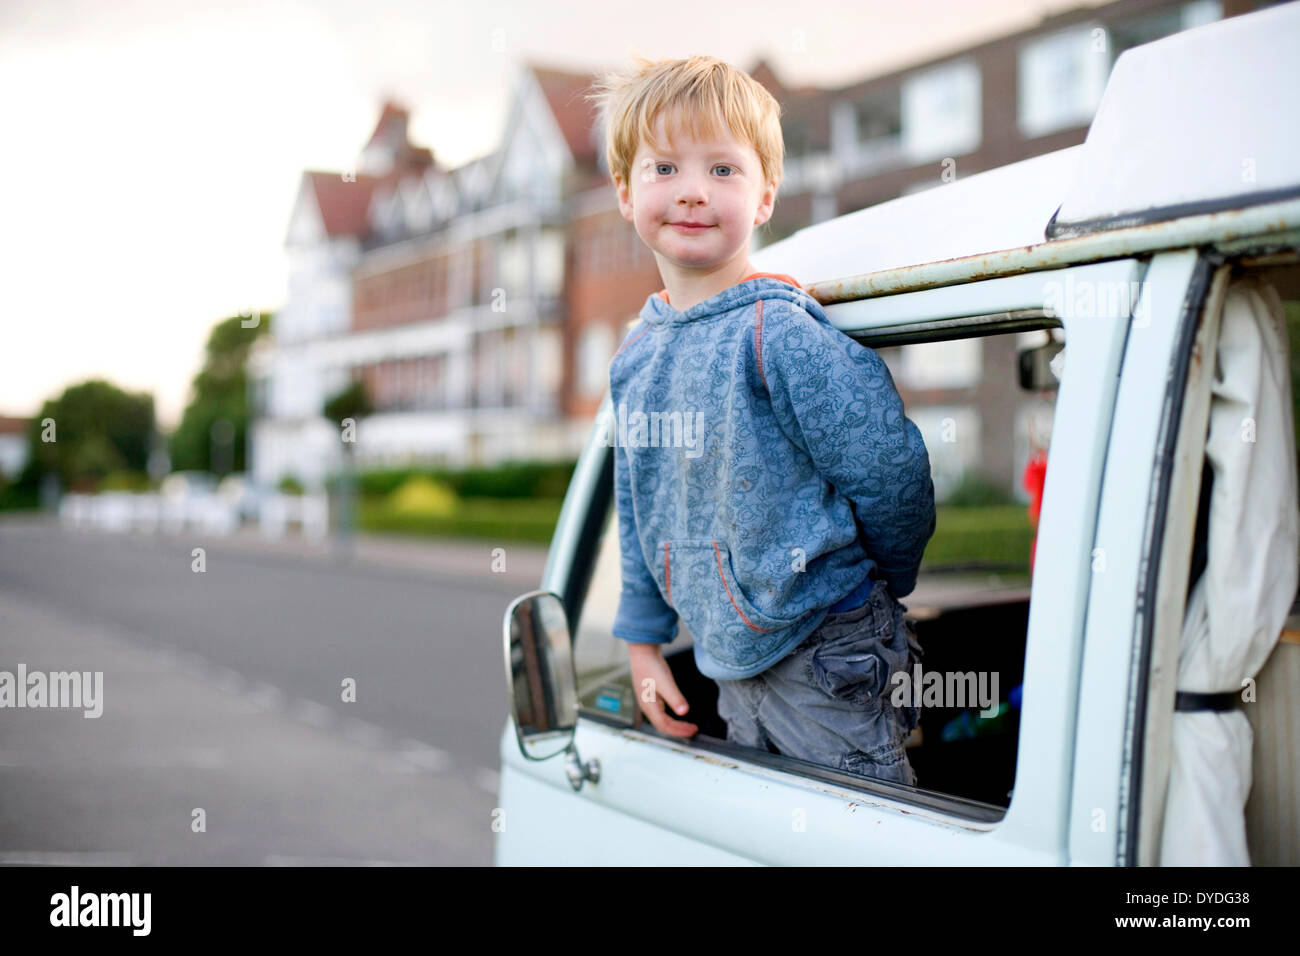 A young boy looks out of his VW bus at the sea side. - Stock Image